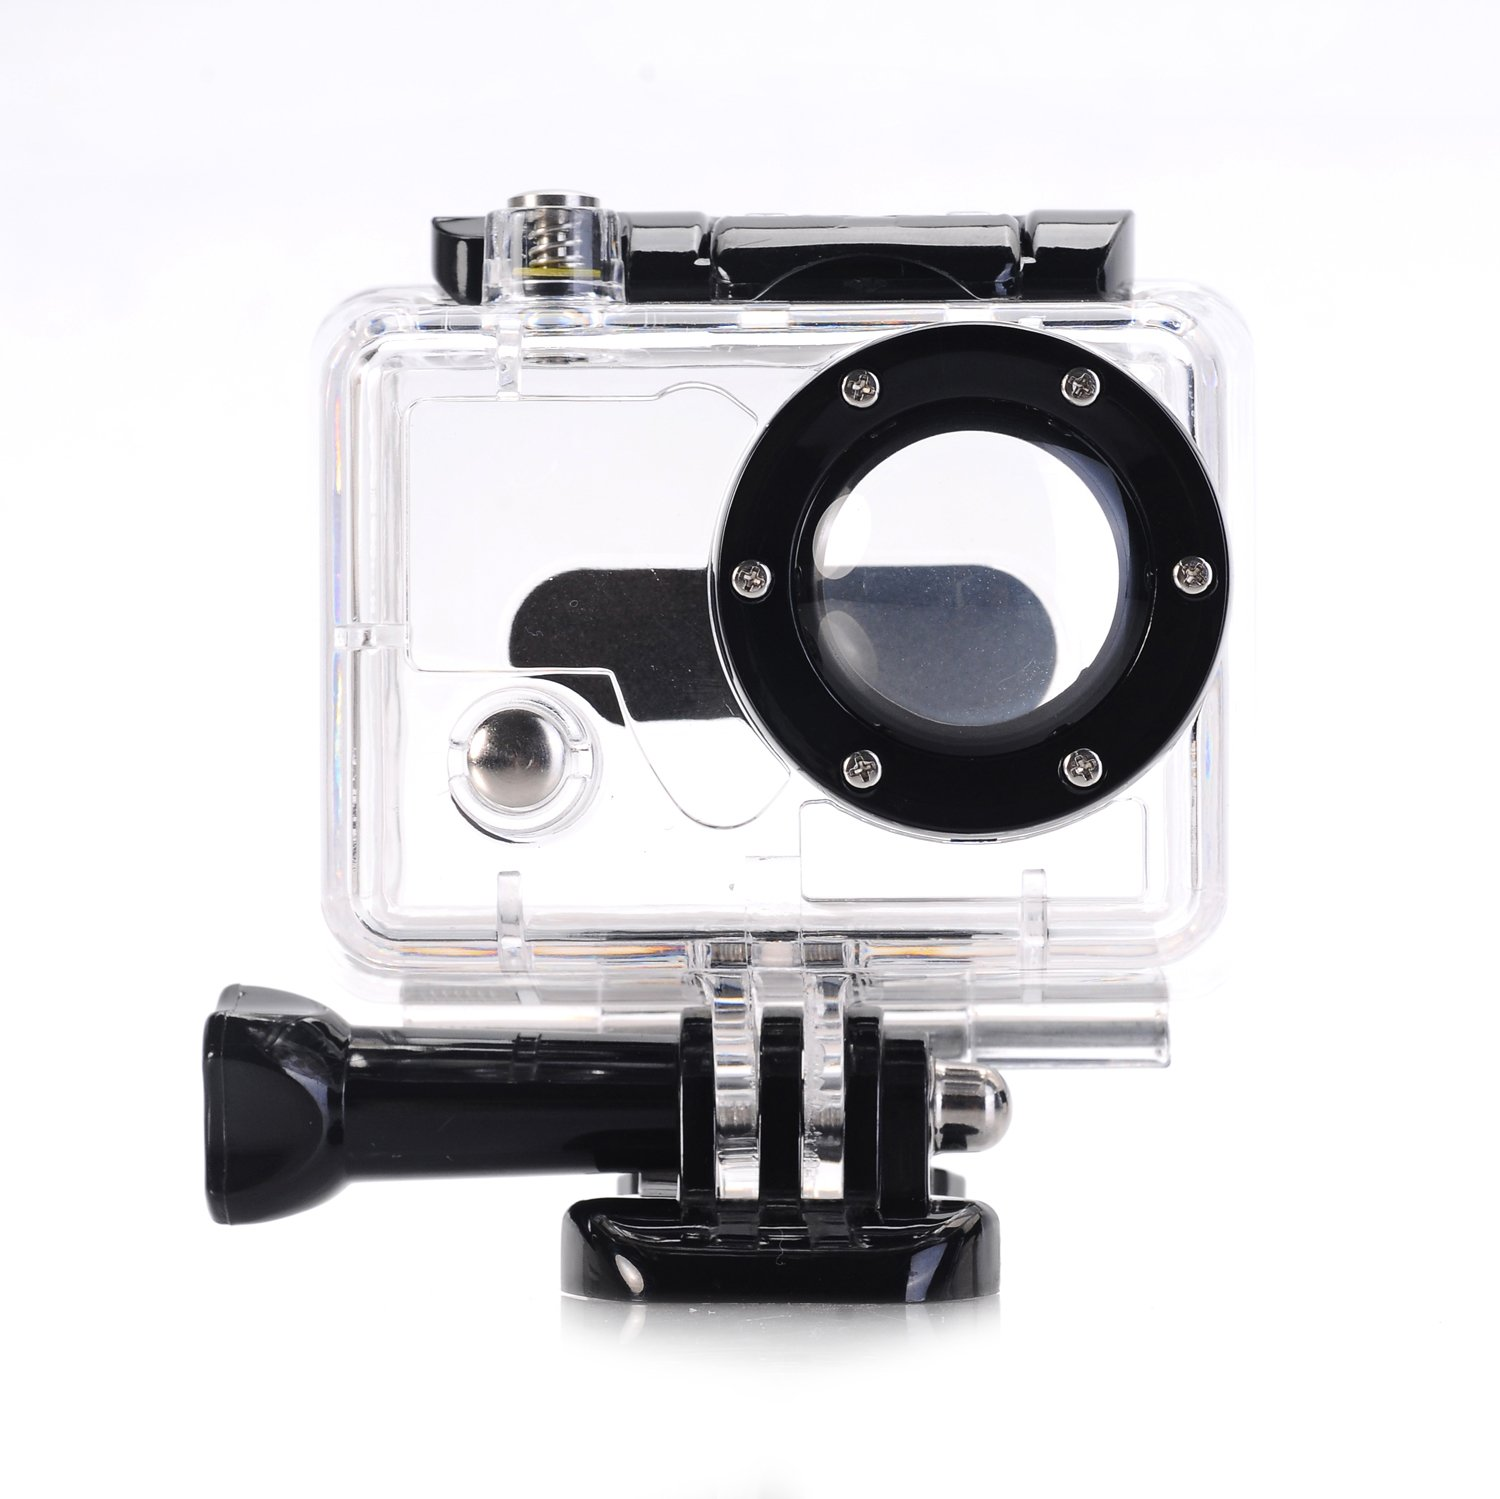 Nechkitter Replacement Waterproof Housing Case for GoPro HD Hero and HD Hero 2 Camera, Underwater Protective Housing Case